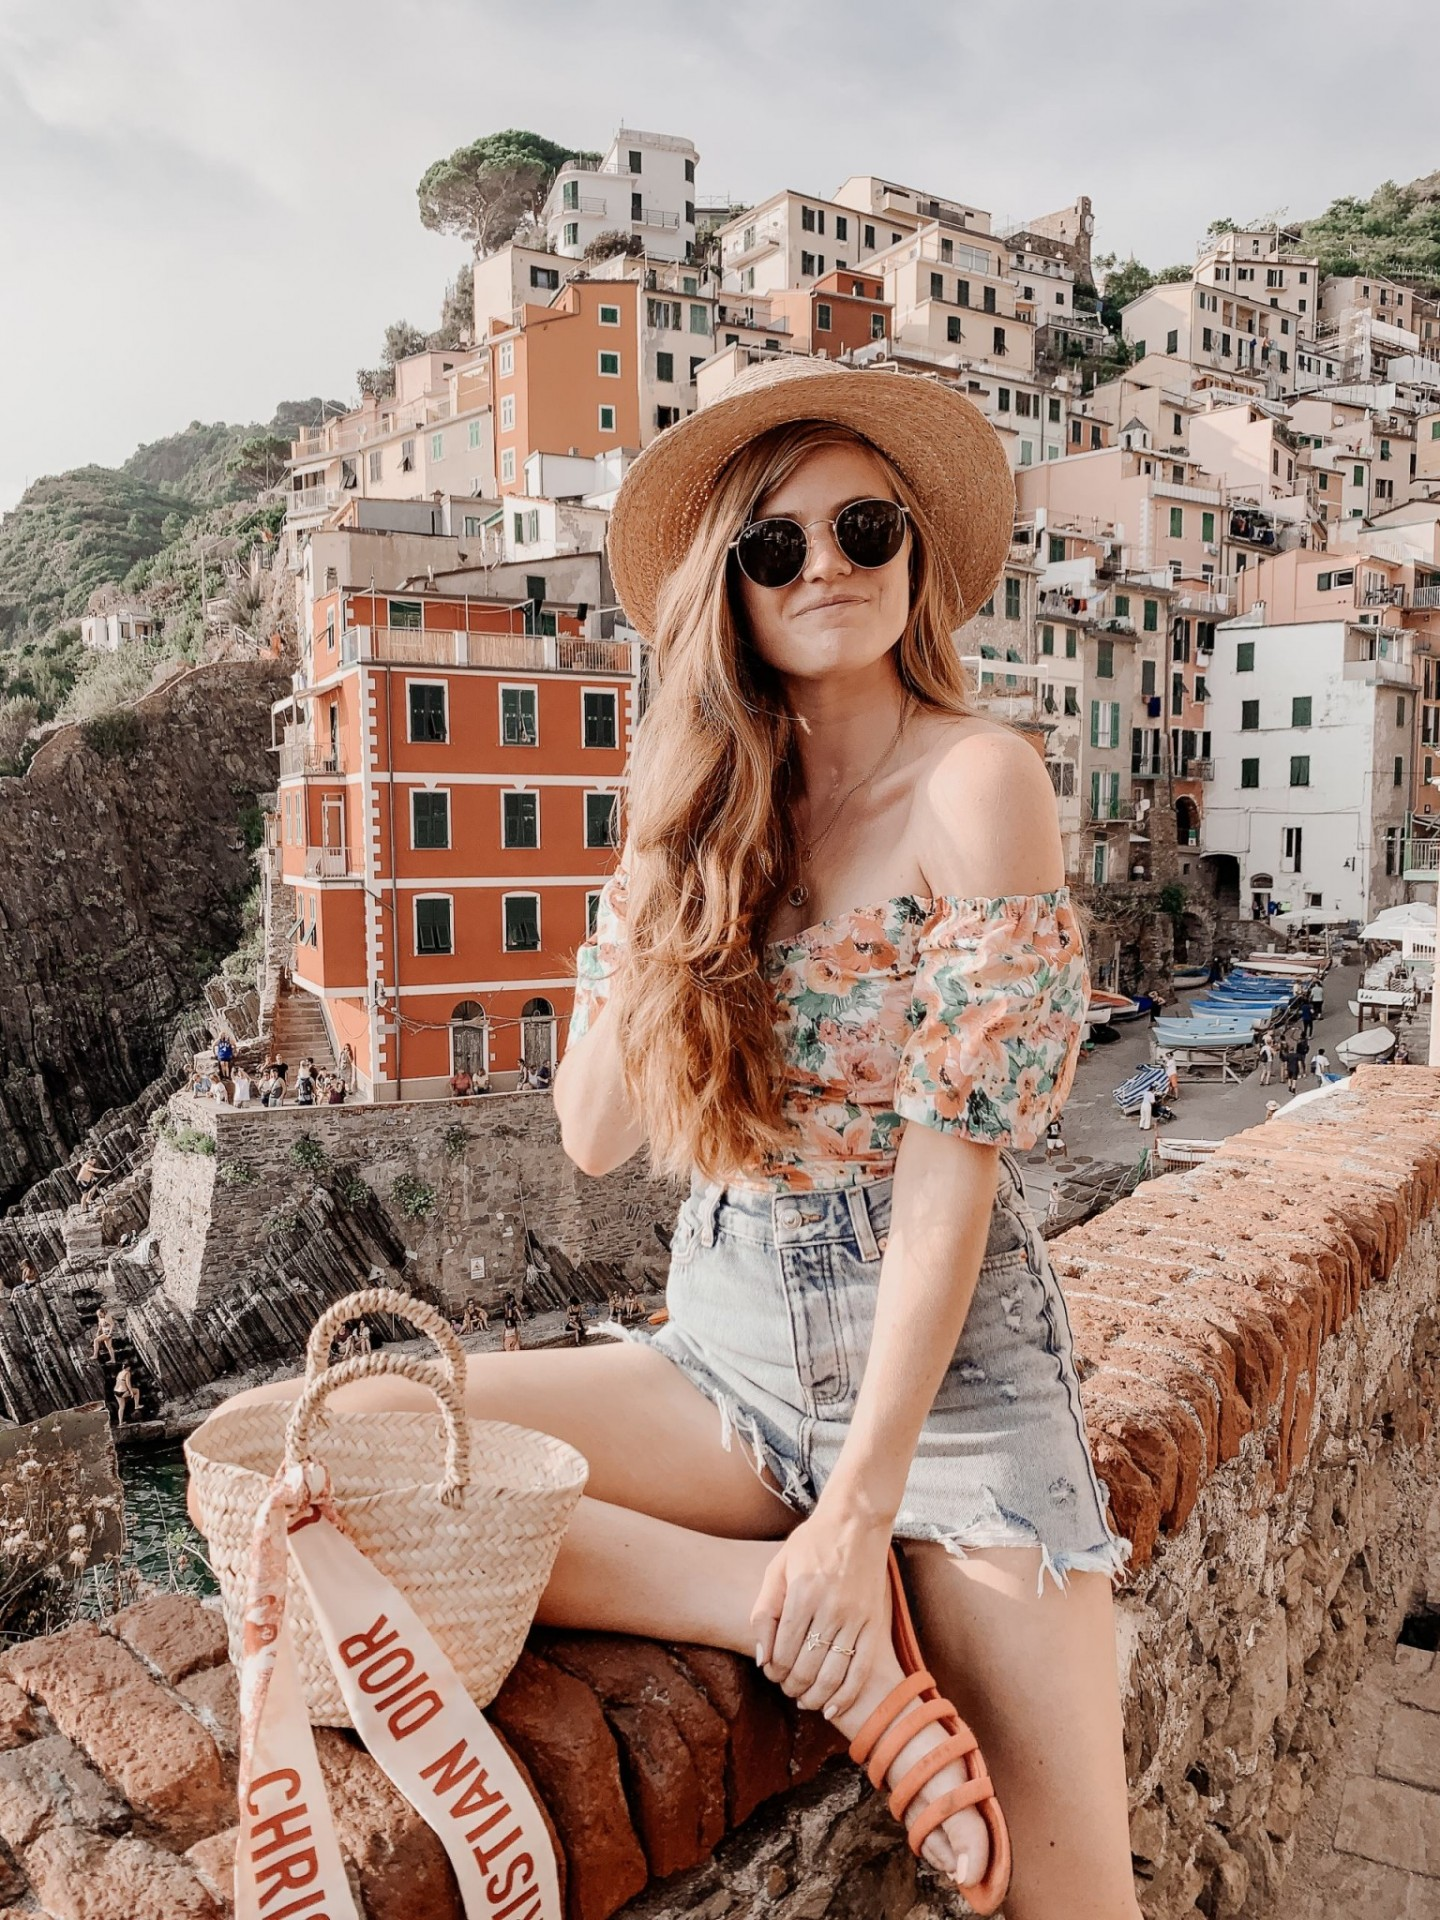 Lifestyle blogger Mollie Moore shares a Cinque Terre travel guide | Travel Guide: Things to do in Cinque Terre, Italy by popular London travel blogger, Mollie Moore: image of a woman sitting outside on a stone wall with the city of Cinque Terre, Italy in the background.